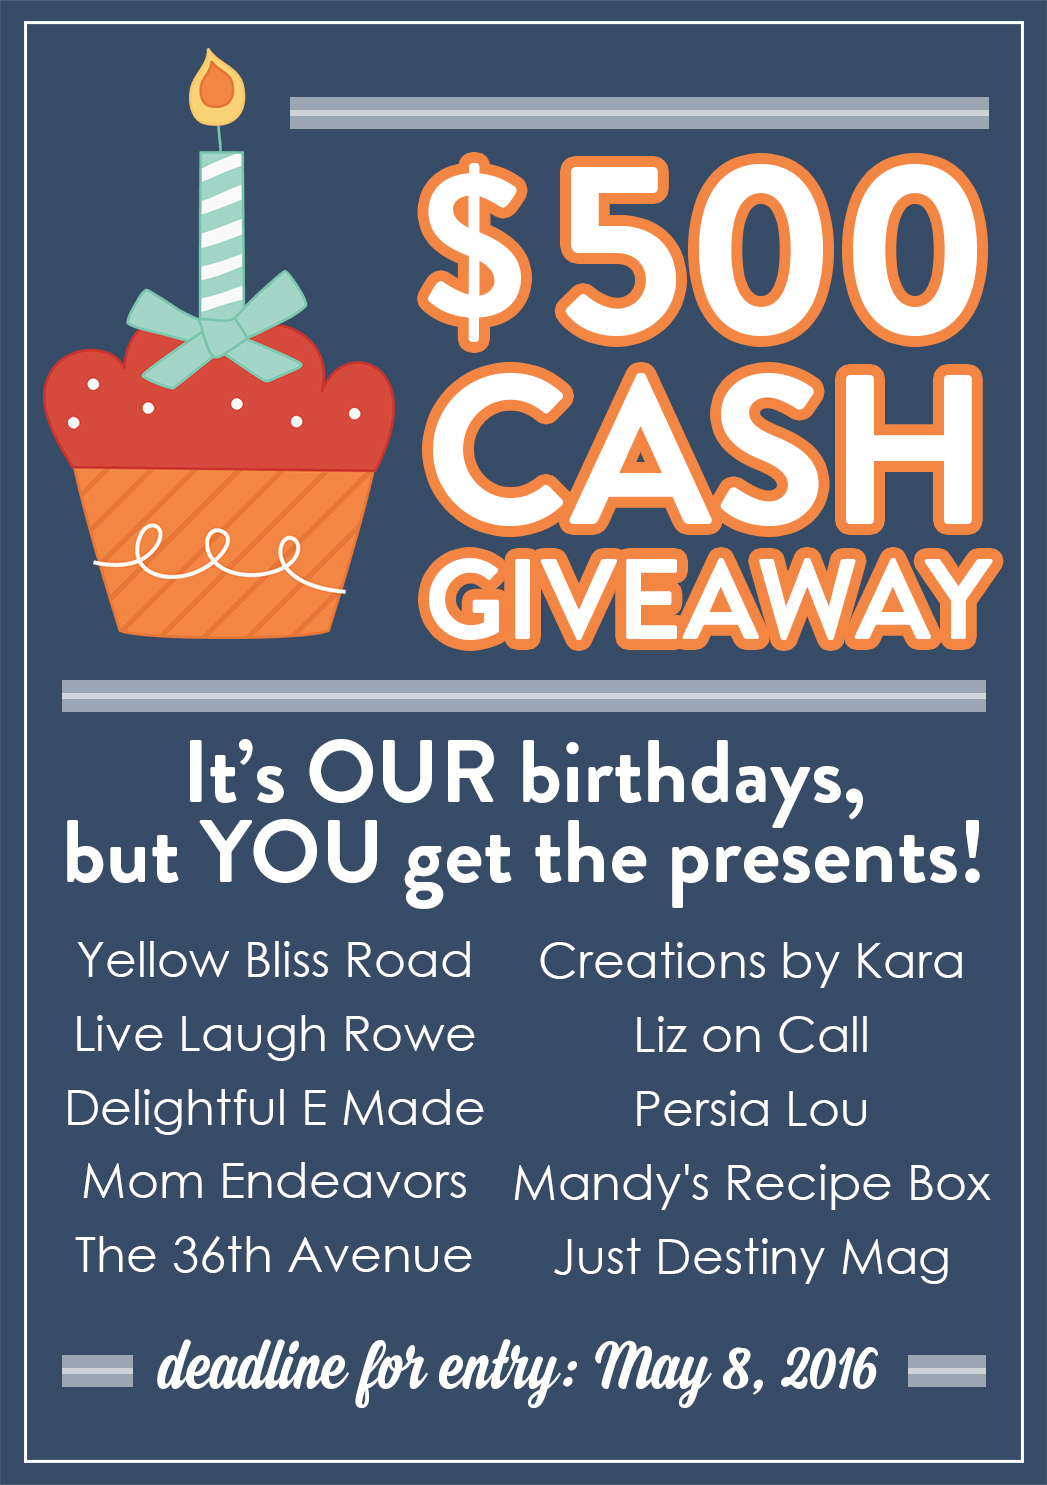 May babies birthday cash giveaway